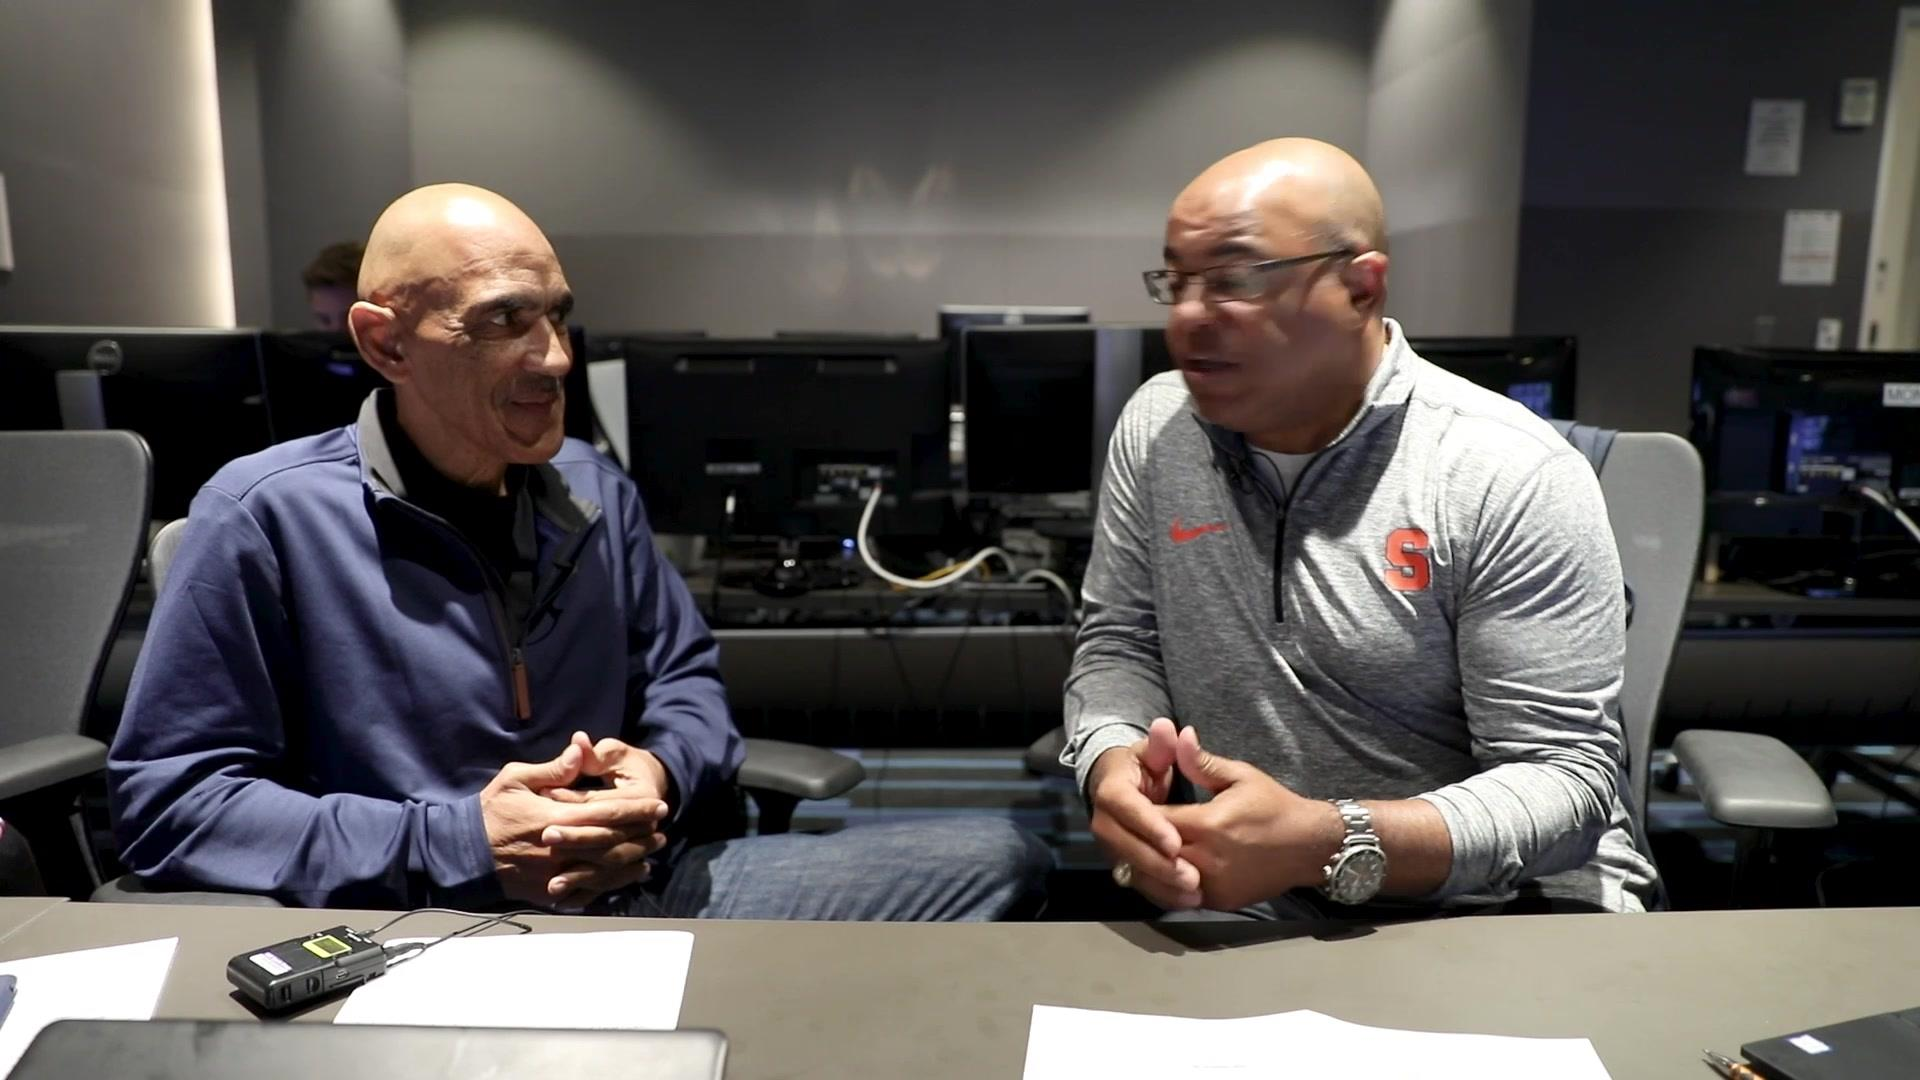 Mike Tirico, Tony Dungy talk Los Angeles Rams vs. Cleveland Browns